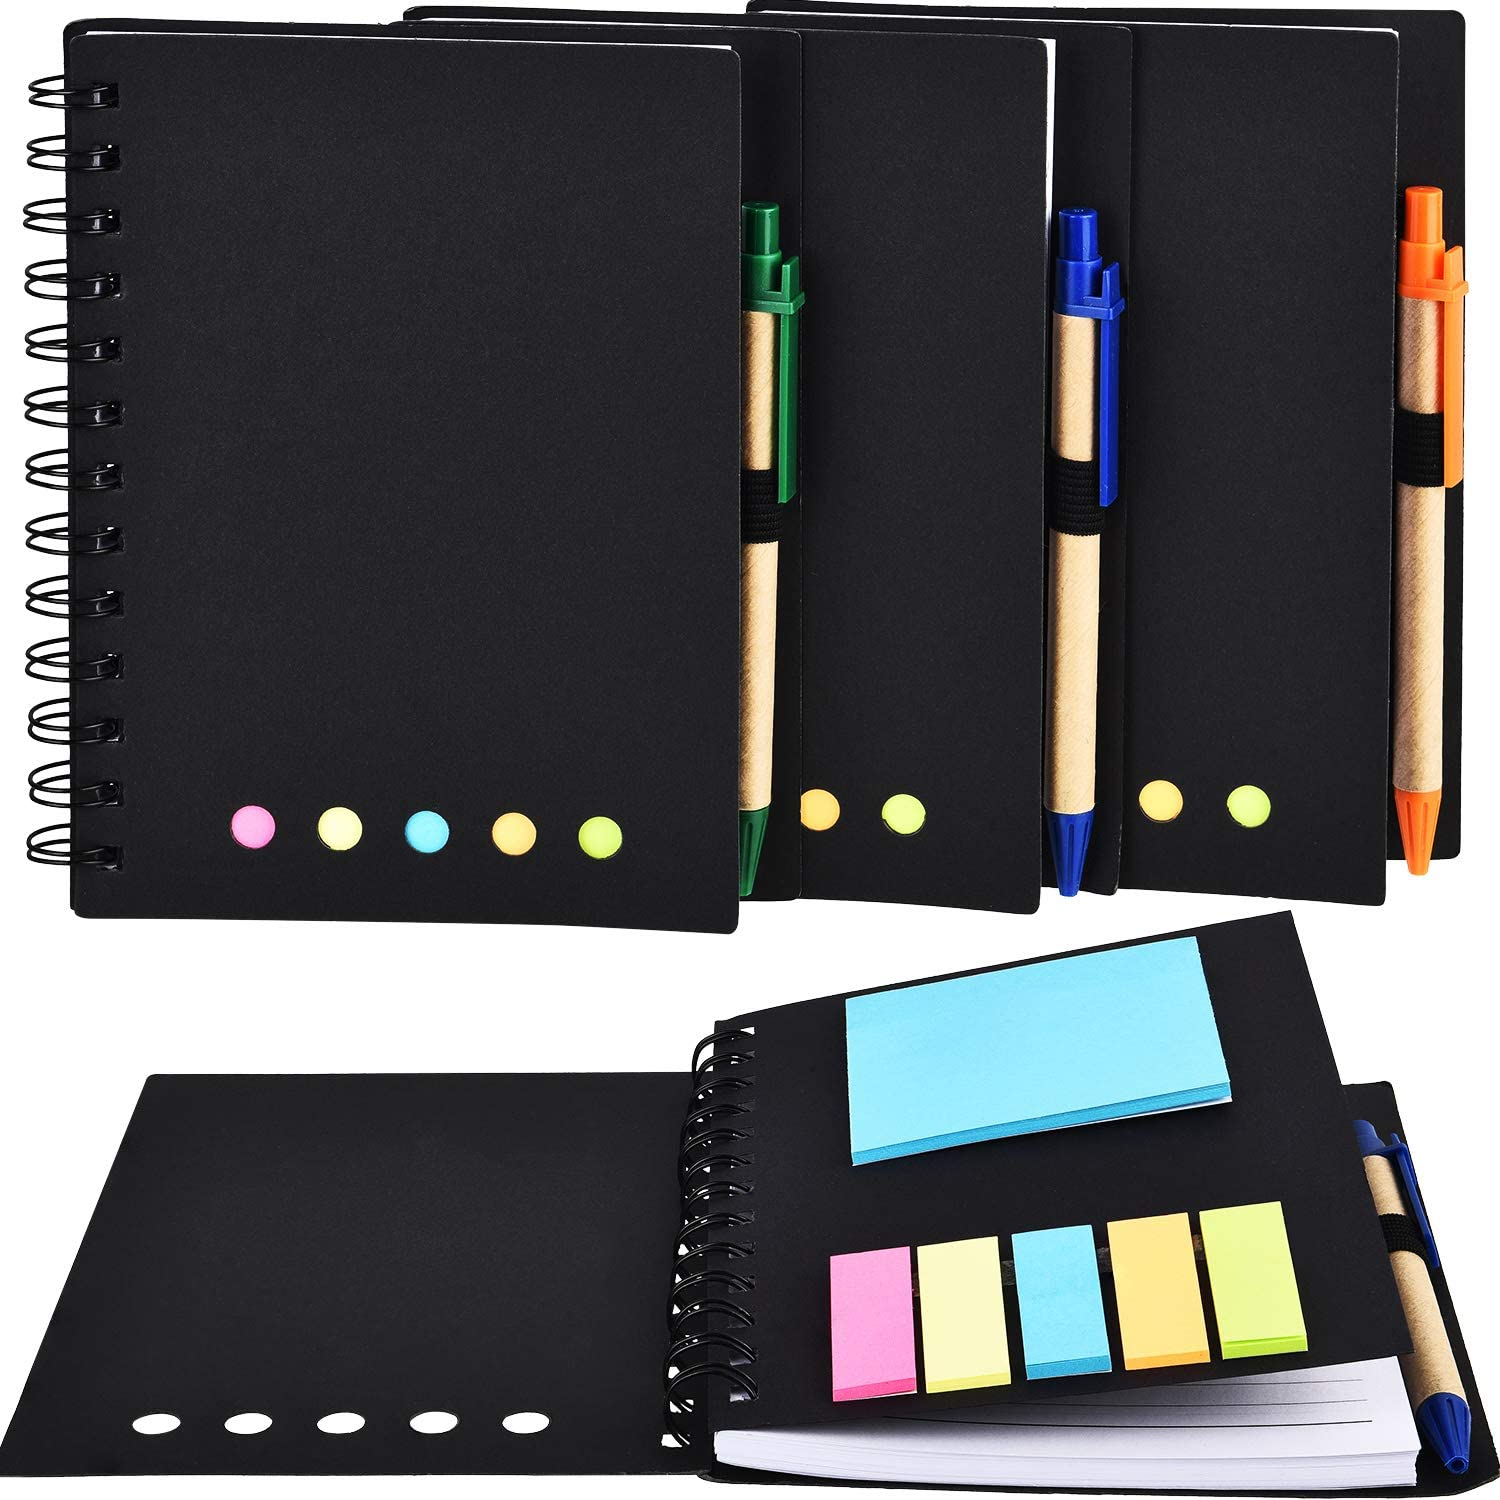 TOODOO 4 Packs Spiral Notebook Lined Notepad with Pen in Holder and Sticky Notes, Page Marker Colored Index Tabs Flags (Black Cover, Large)